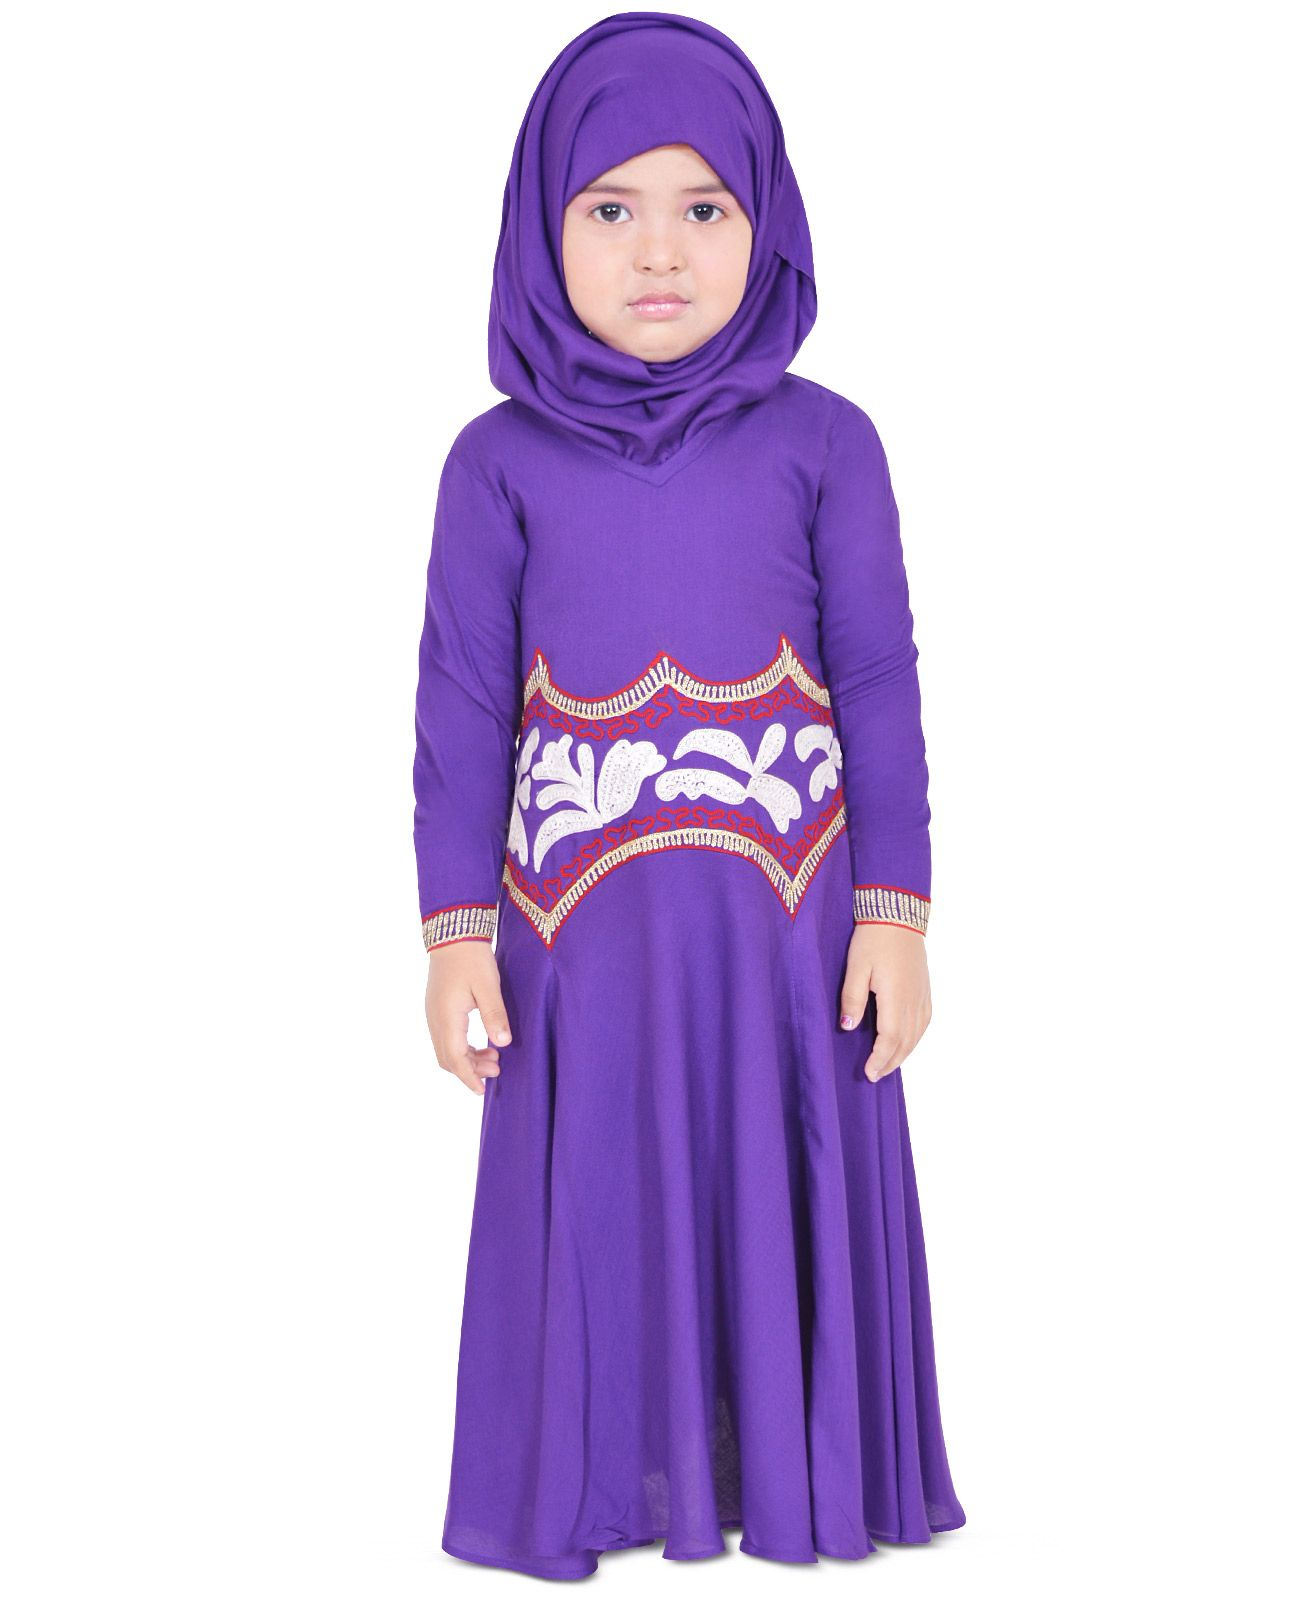 Eid Ul Fitr 2016 Kids Abaya Islamic Cloting Girls Burqa EID